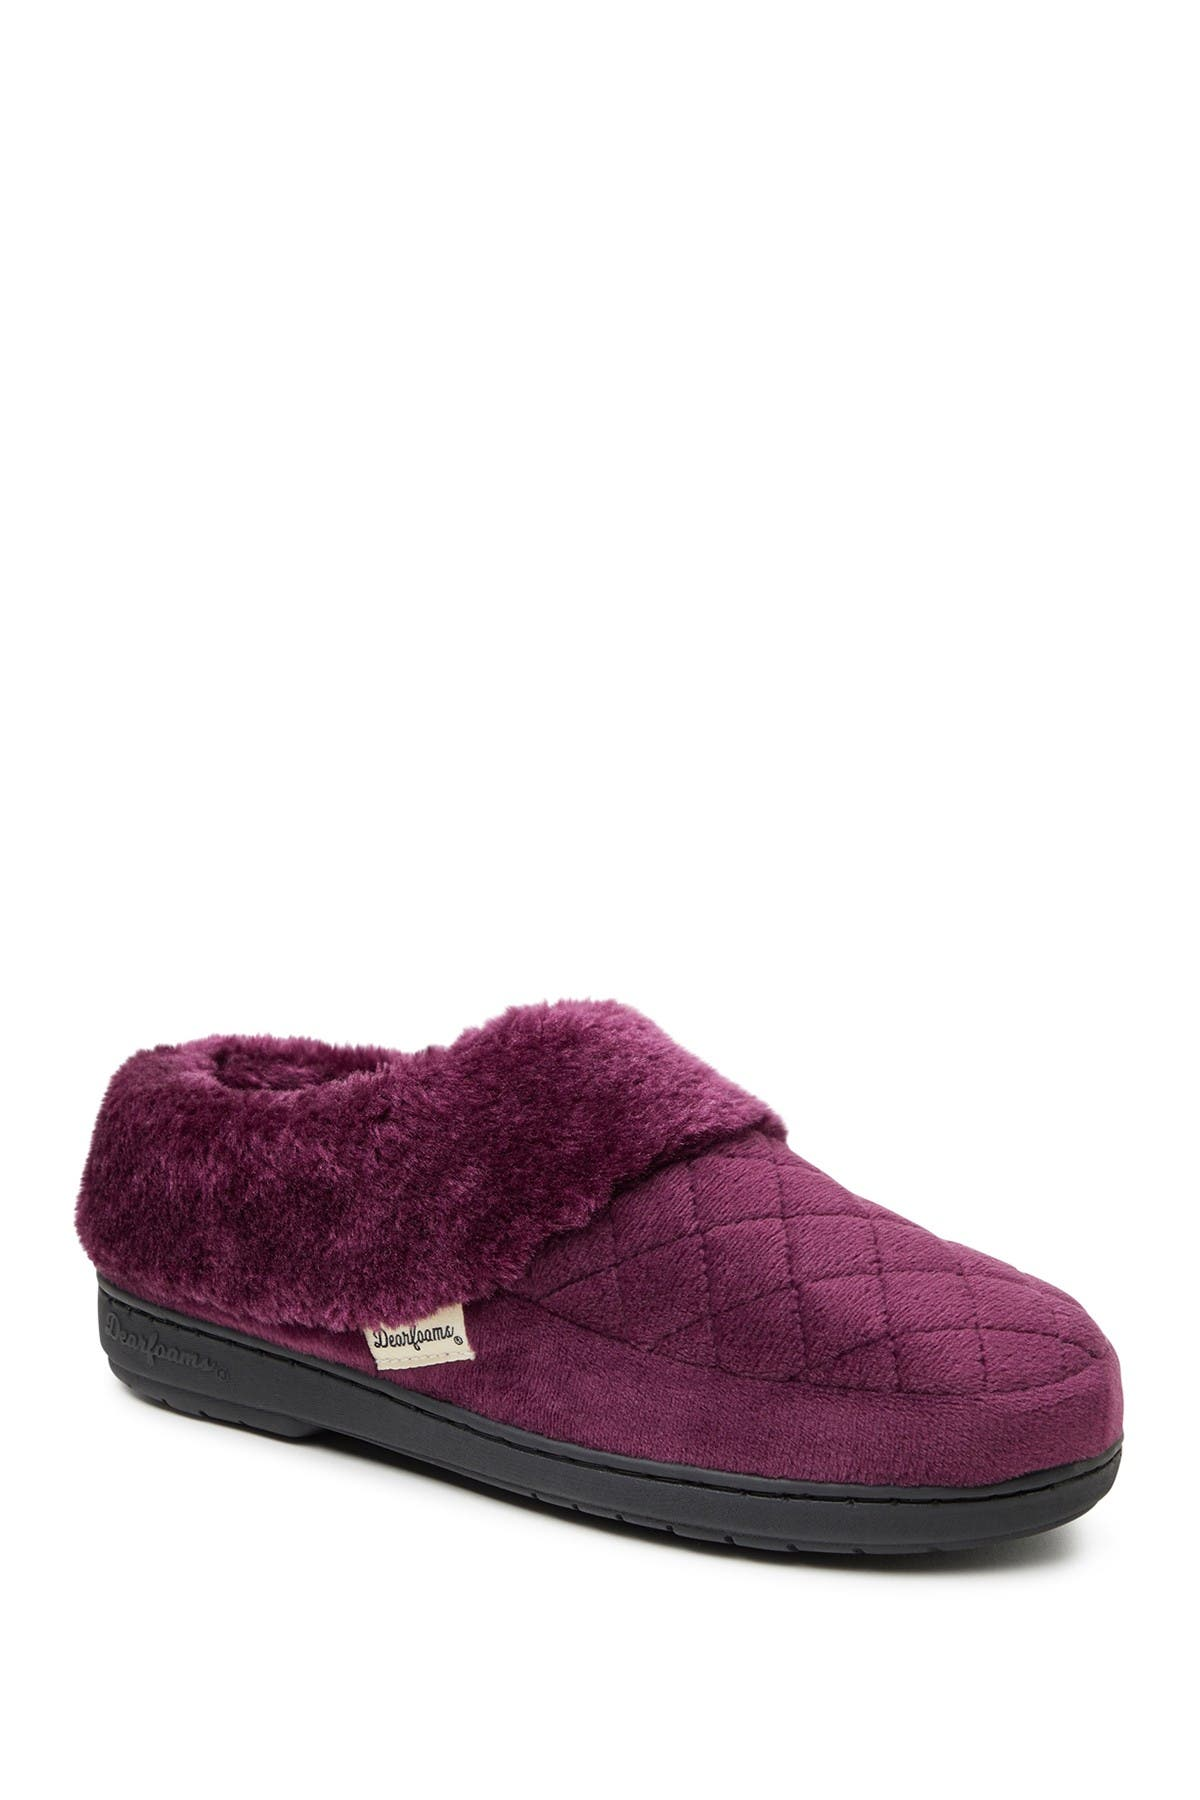 Image of Dearfoams Elaine Quilted Velour Faux Fur Trimmed Clog